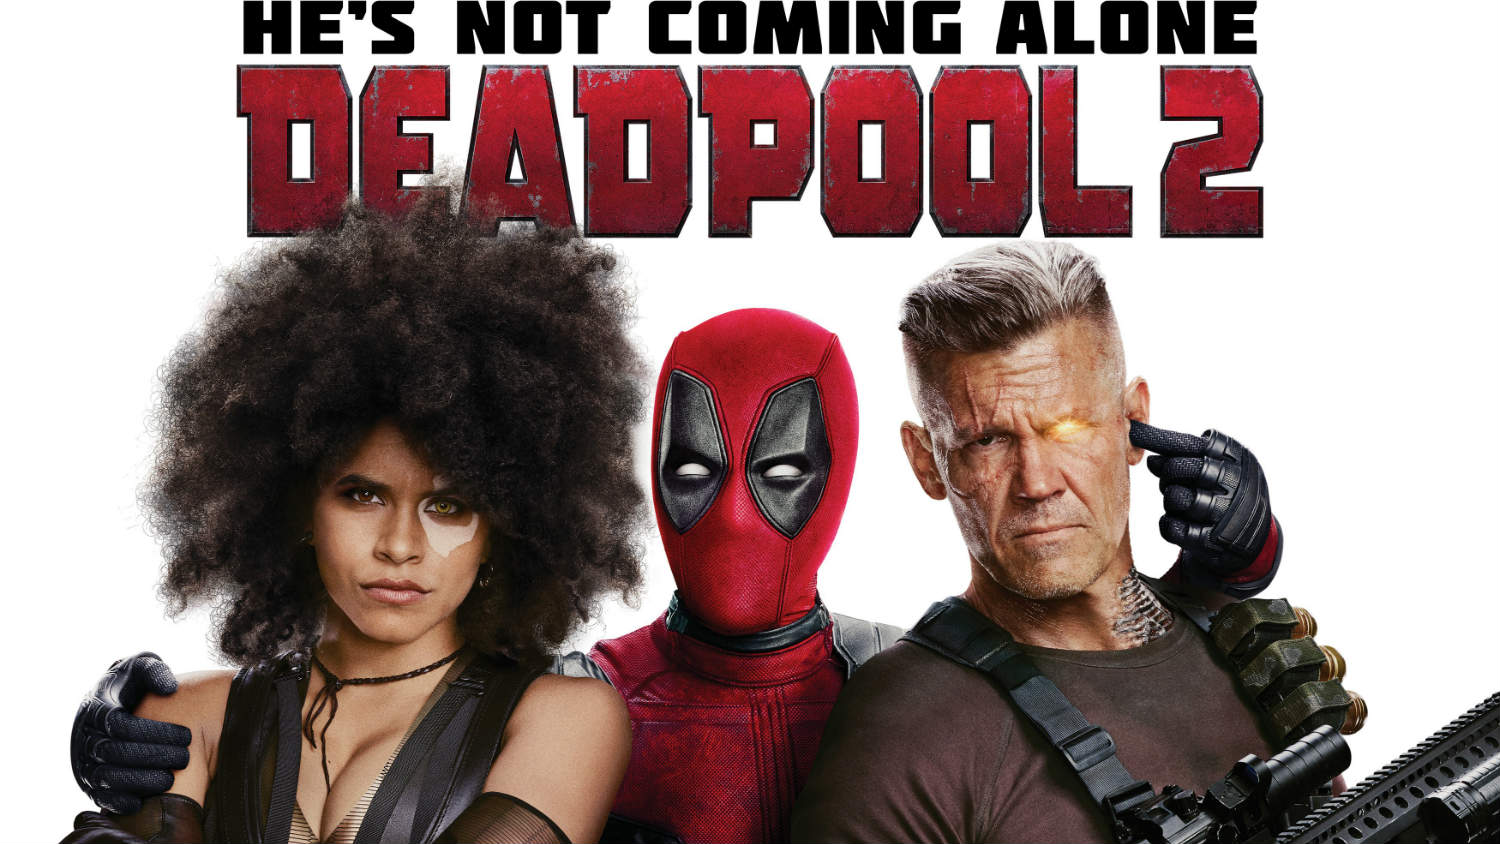 Deadpool 2 IMAX Review – You're Welcome Canada - OC Movie Reviews - Movie Reviews, Movie News, Documentary Reviews, Short Films, Short Film Reviews, Trailers, Movie Trailers, Interviews, film reviews, film news, hollywood, indie films, documentaries